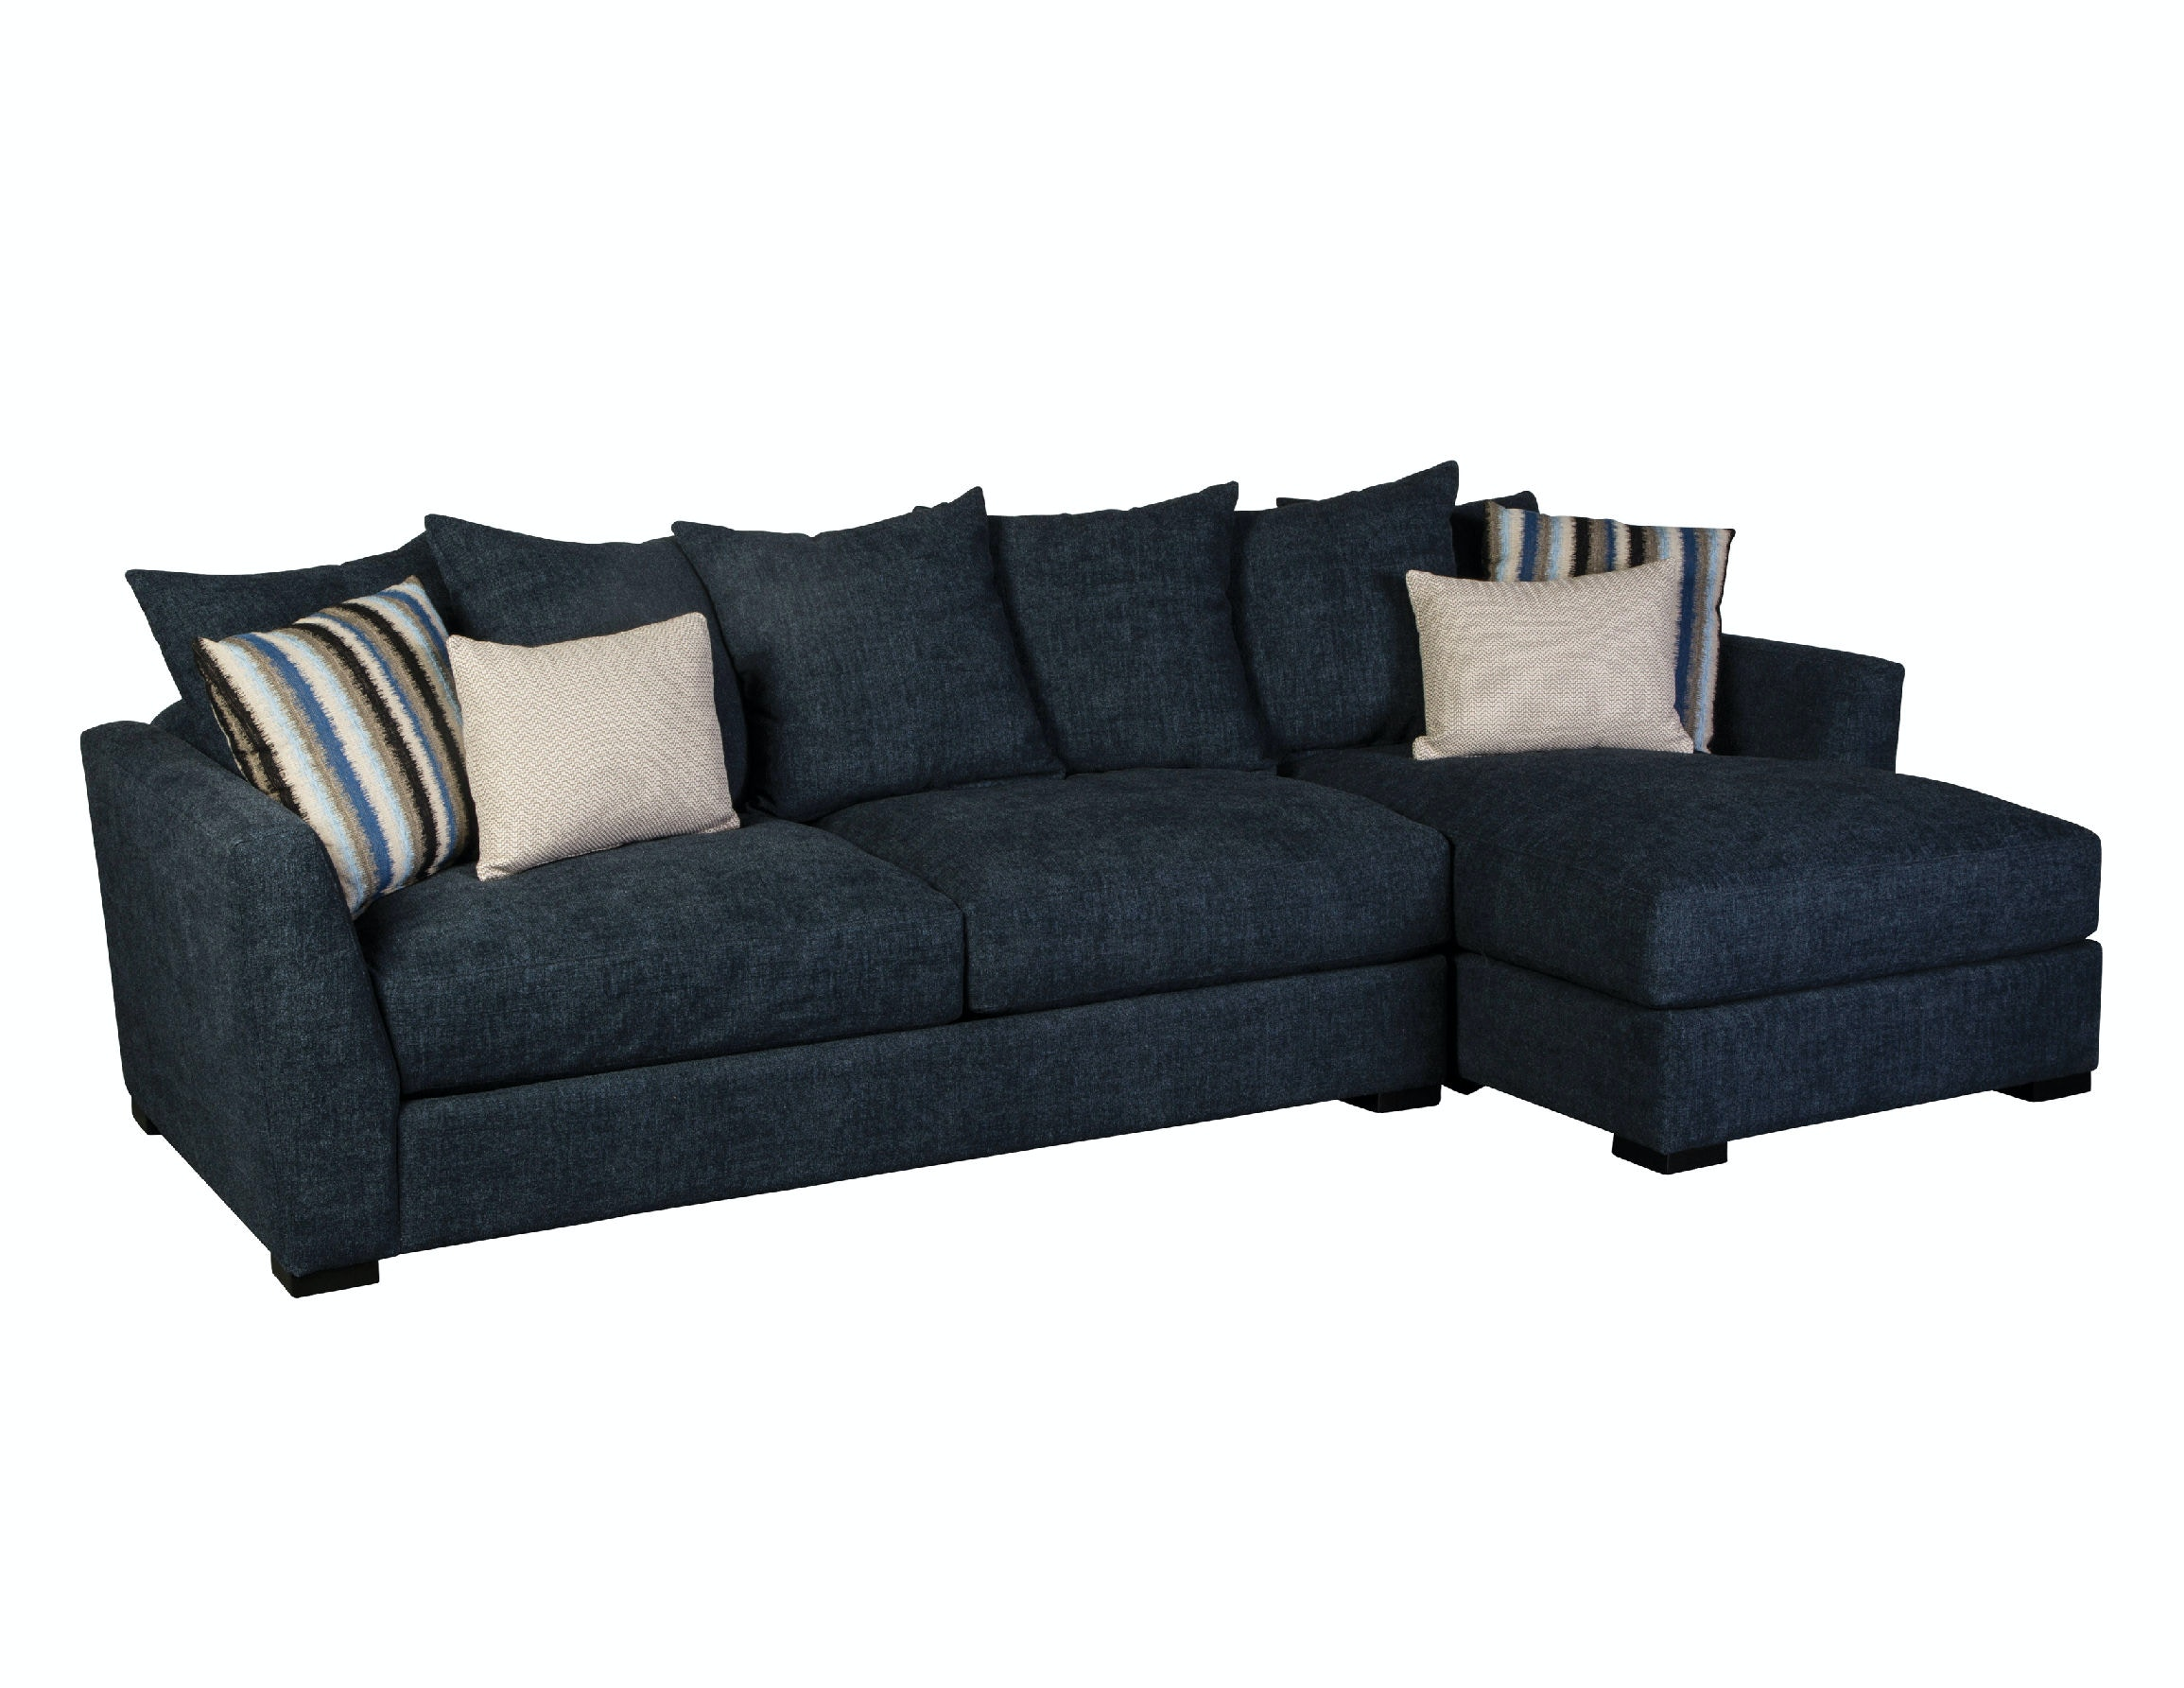 Jonathan Louis International Harvey Sectional 162 Sectional